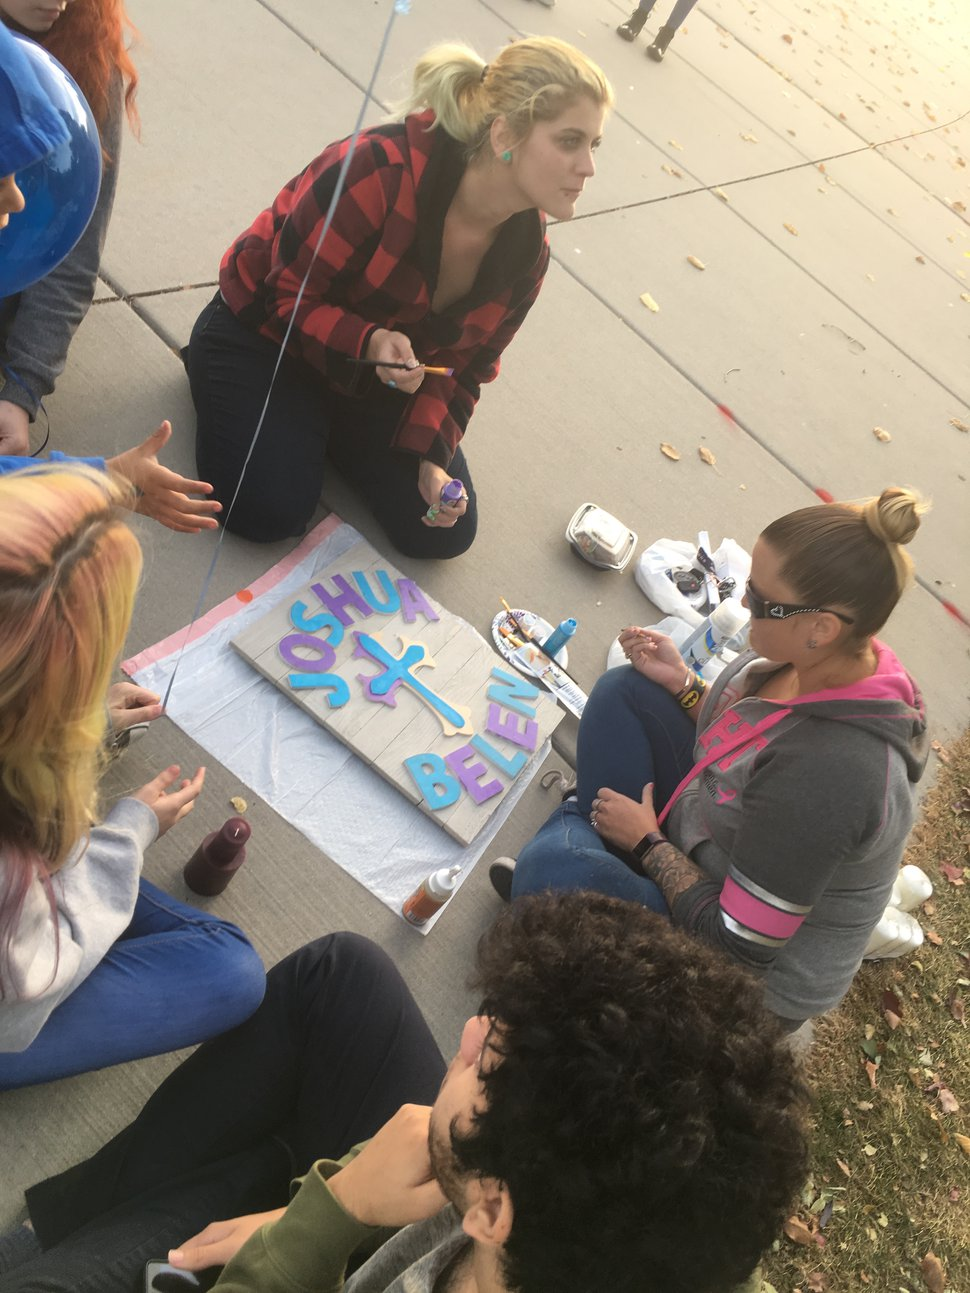 (Mariah Noble | The Salt Lake Tribune) Friends of Joshua Belen gathered to remember him Monday night, after he was shot and killed Saturday, Oct. 21, 2017. Sky Byrne, top left, paints a sign with his name on it. During the gathering, Belen's friends released blue and purple balloons in his memory.